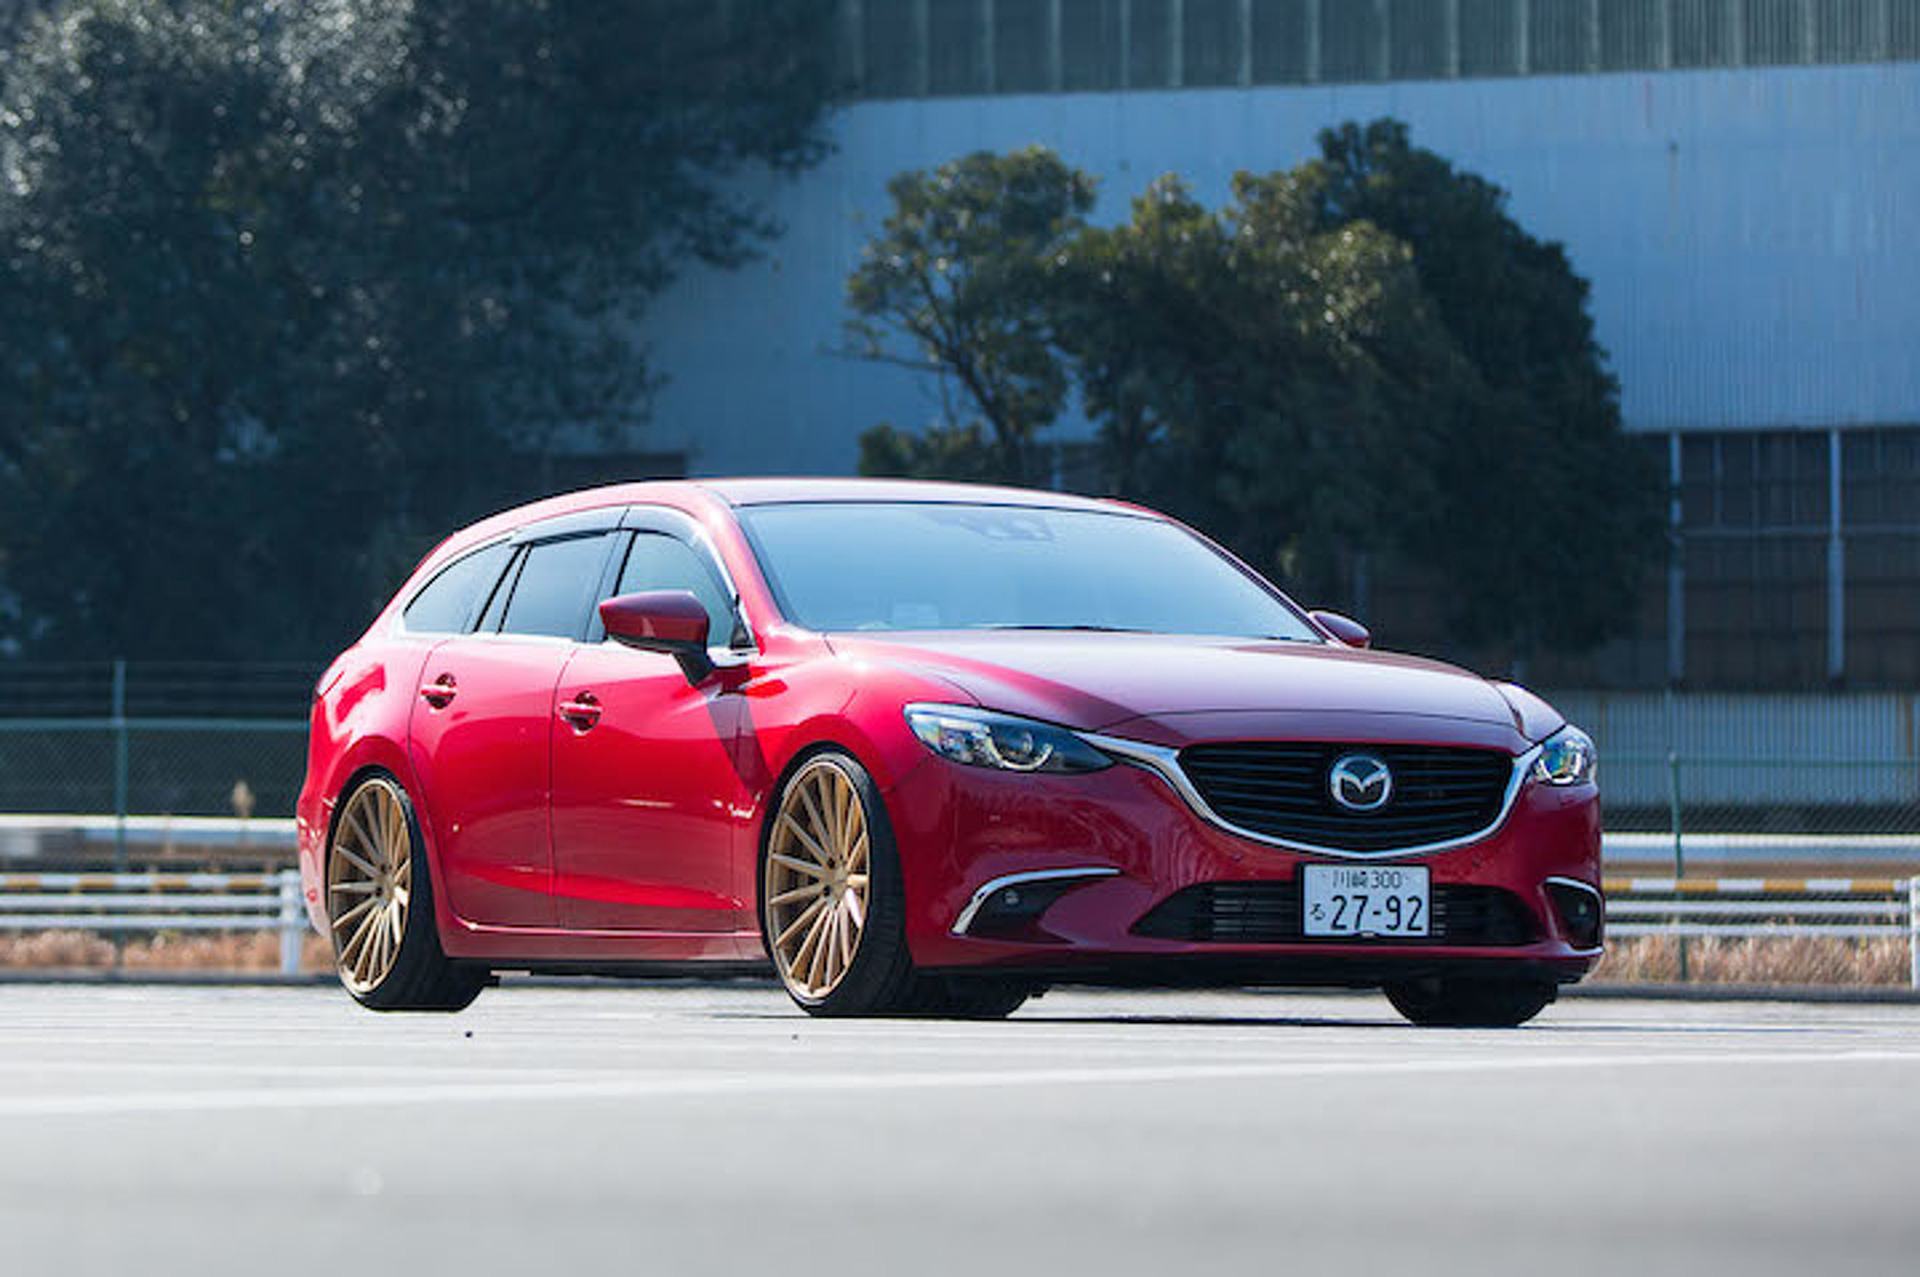 https://icdn-5.motor1.com/images/mgl/VLA9l/s1/mazda-6-redefines-the-term-swag-wagon-riding-on-vossen-wheels.jpg